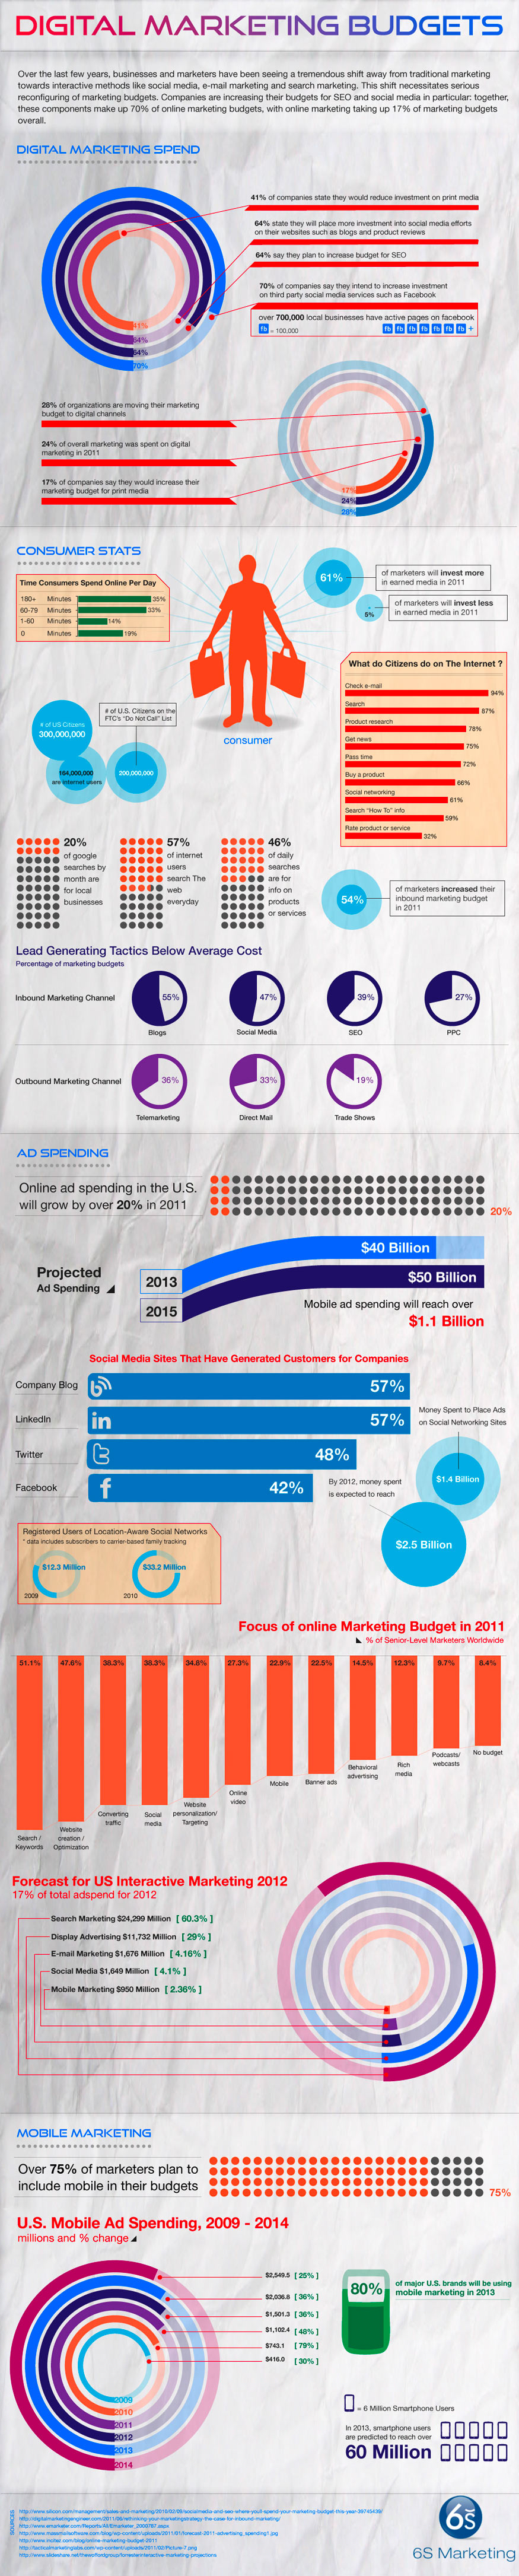 digital-marketing-budget-trends-2012